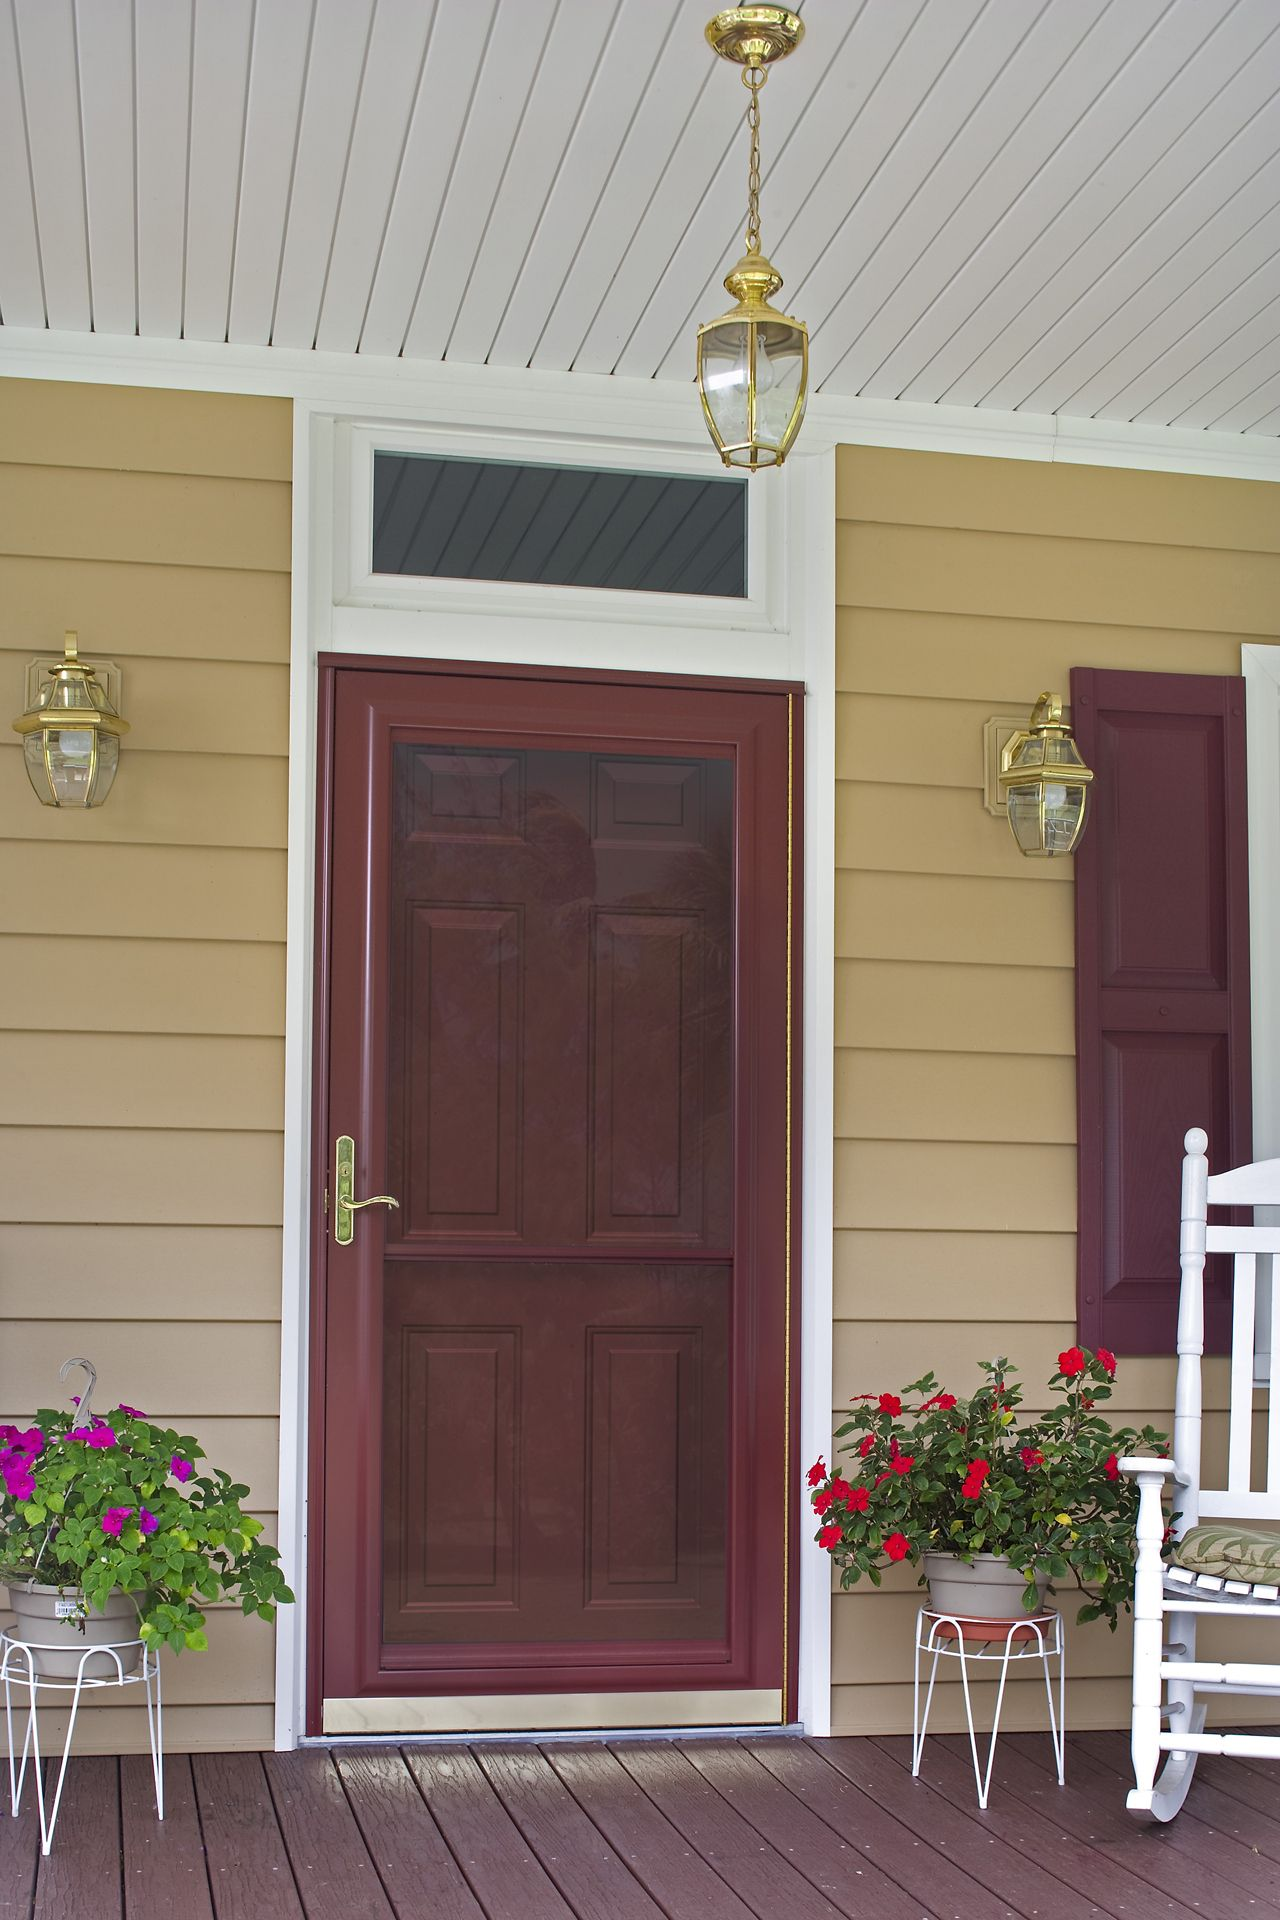 Spectrum storm doors by ProVia feature a top and bottom InVent retractable screen bringing you smooth funtionality beauty and durability. & Spectrum storm doors by ProVia feature a top and bottom InVent ...